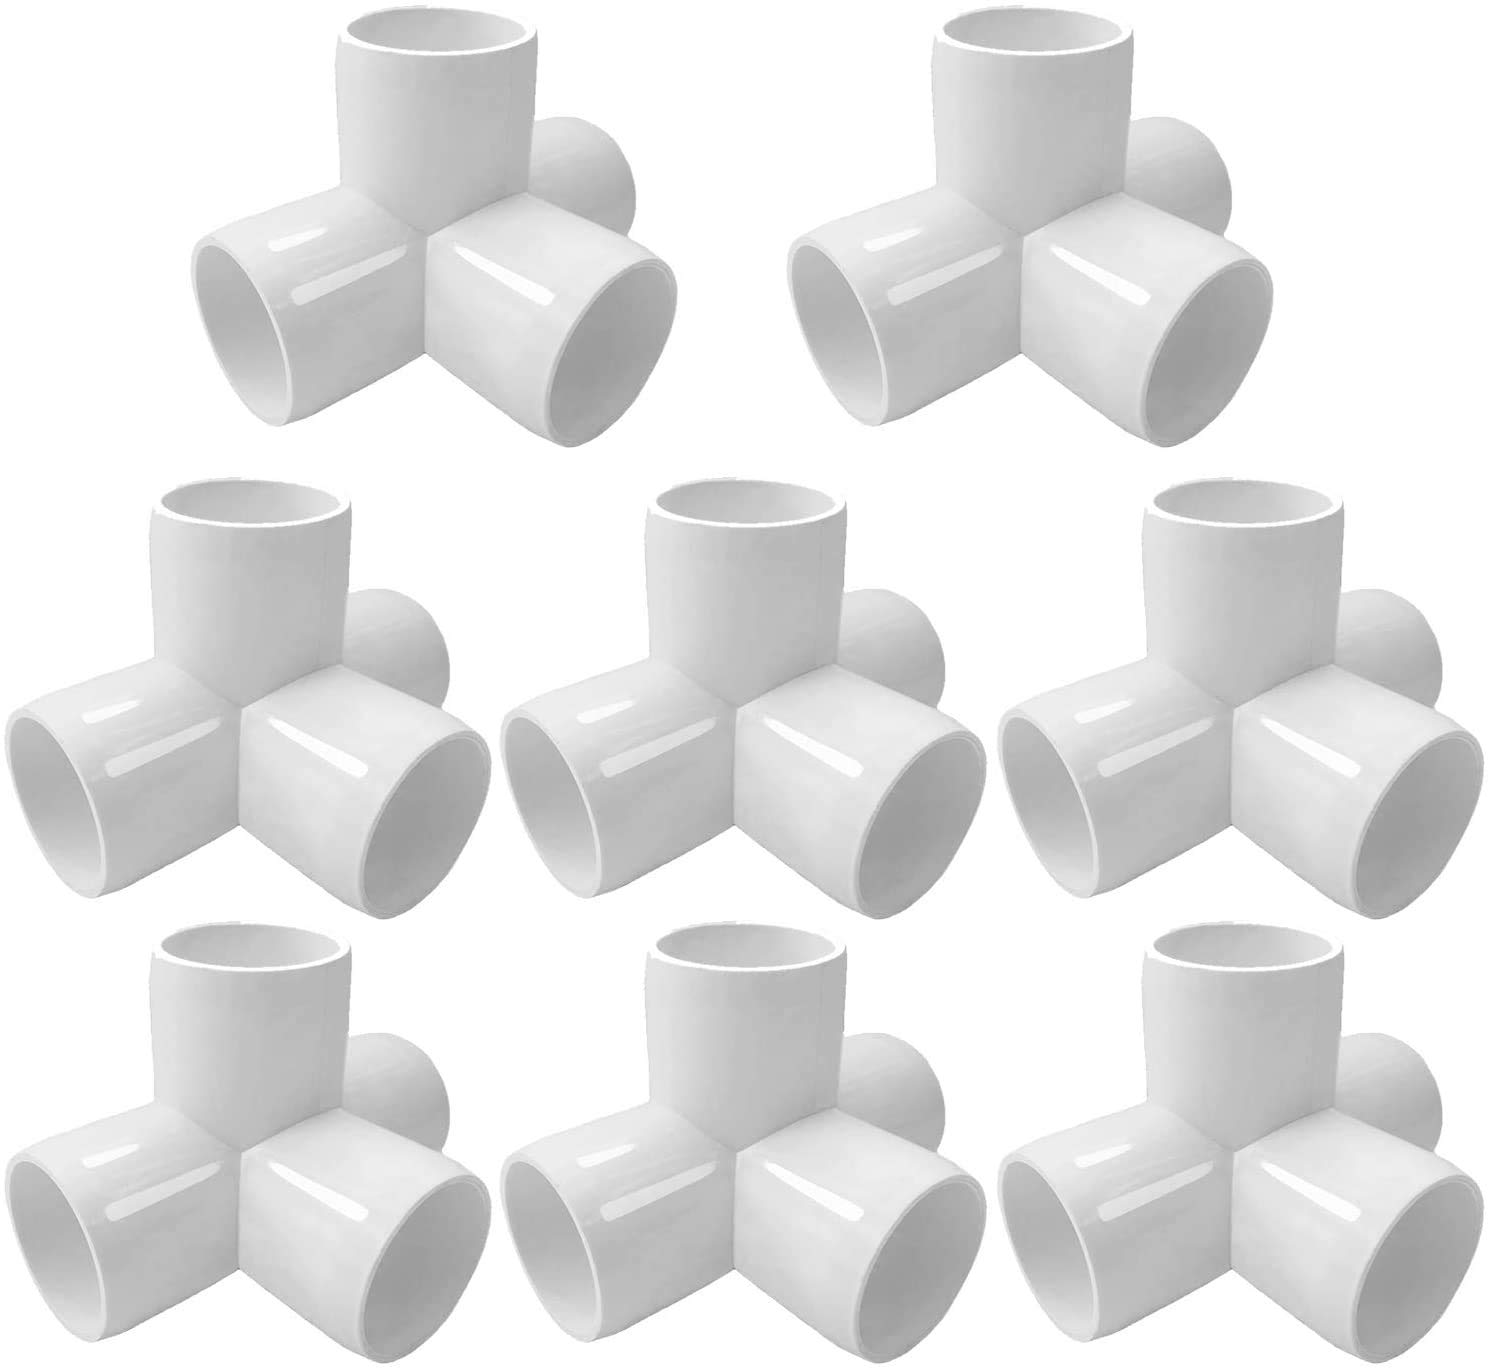 Toolly 4Way 1inch Tee PVC Fitting Elbow 1in - Build Heavy Duty PVC Furniture - PVC Elbow Fittings [Pack of 8]